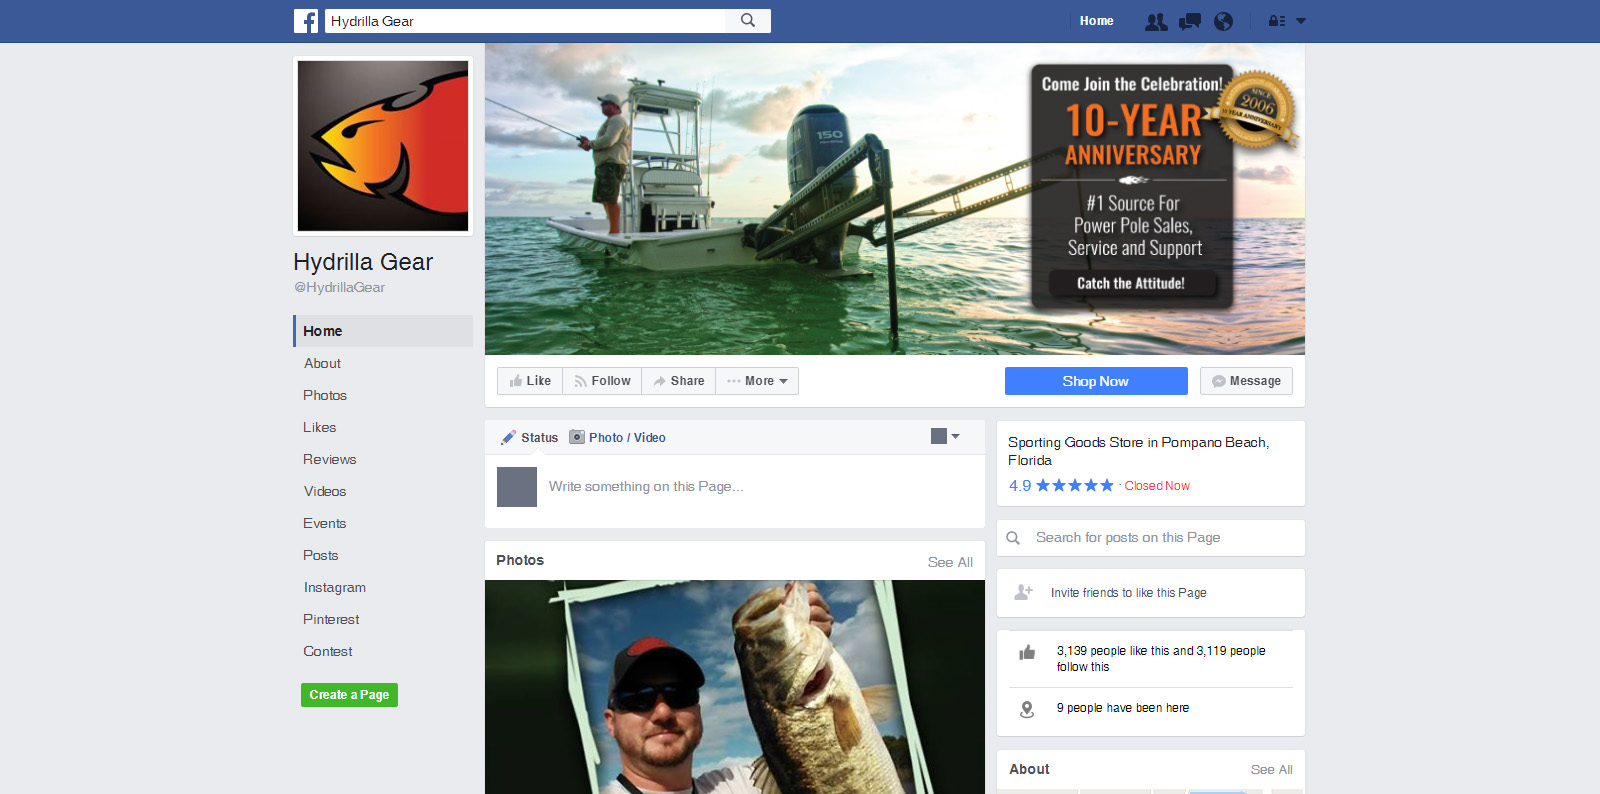 Hydrilla Gear - Social Media Marketing